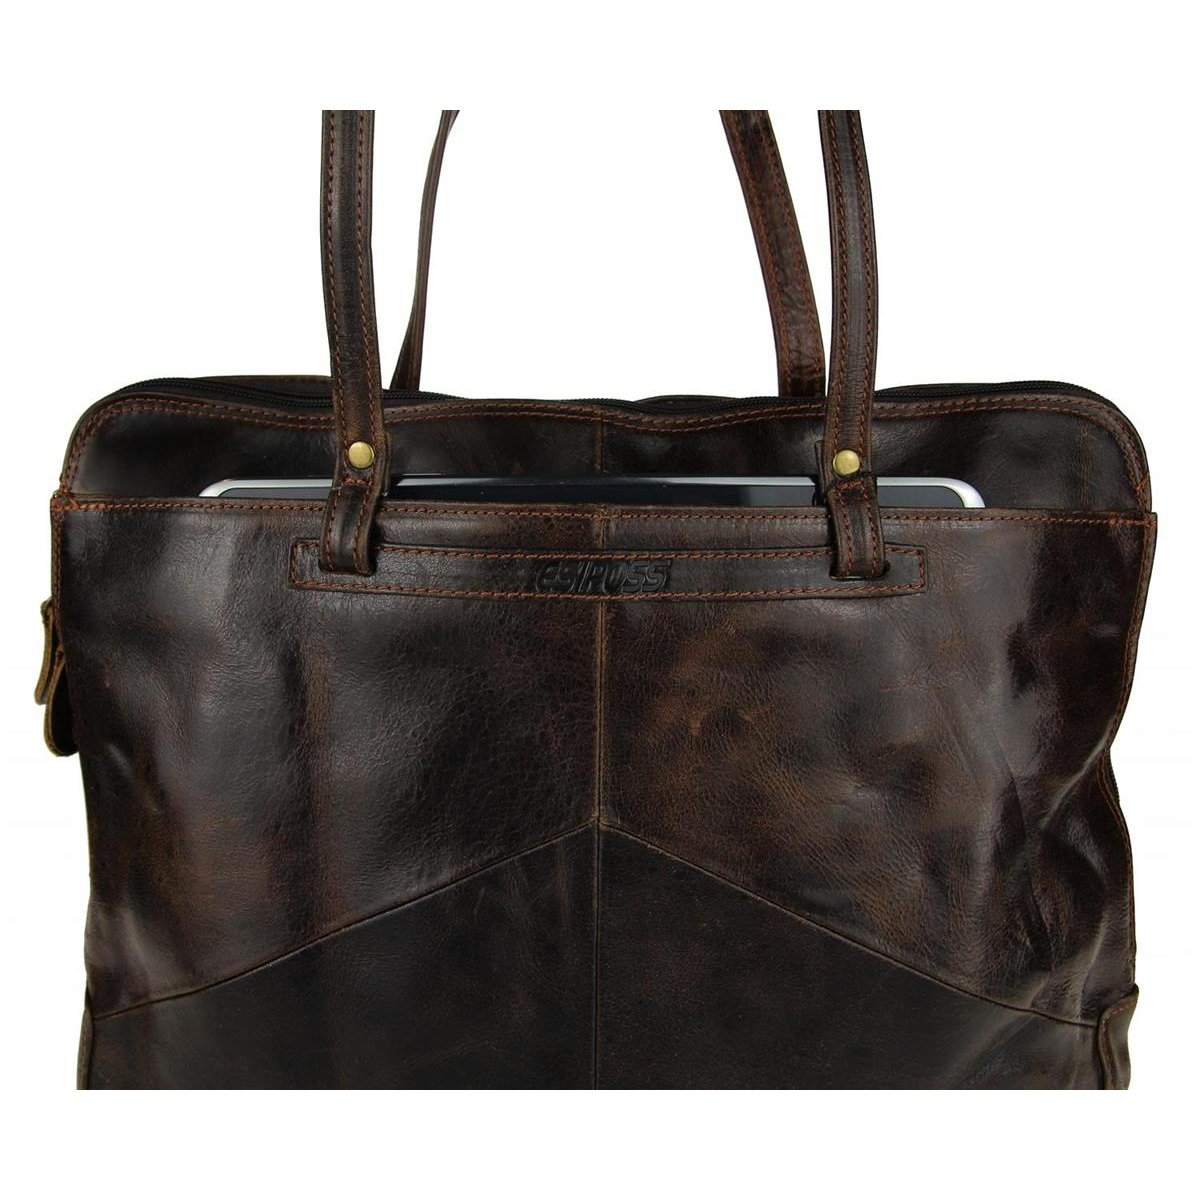 ital damen tasche businesstasche vintage retro style leder handtasche. Black Bedroom Furniture Sets. Home Design Ideas